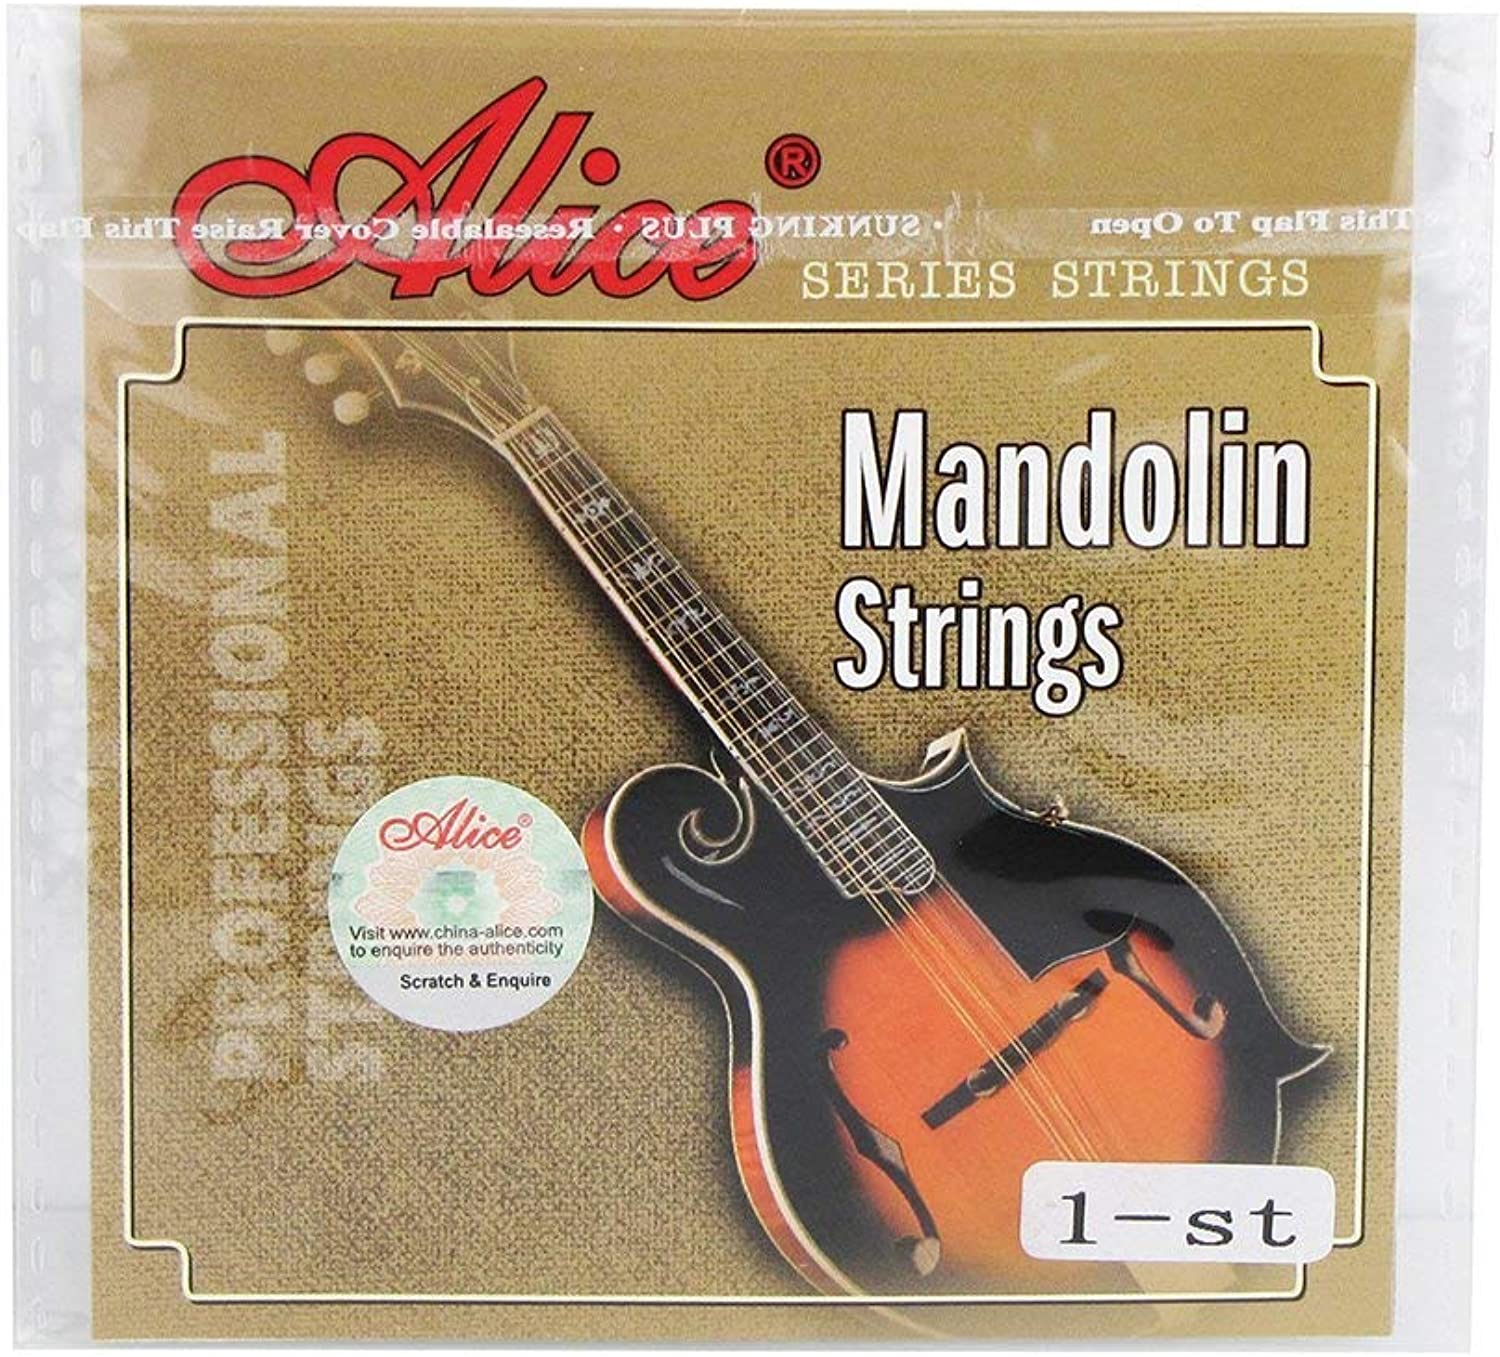 Alice AM04 Mandolin Strings E1st Plated Steel StringsExtra Light